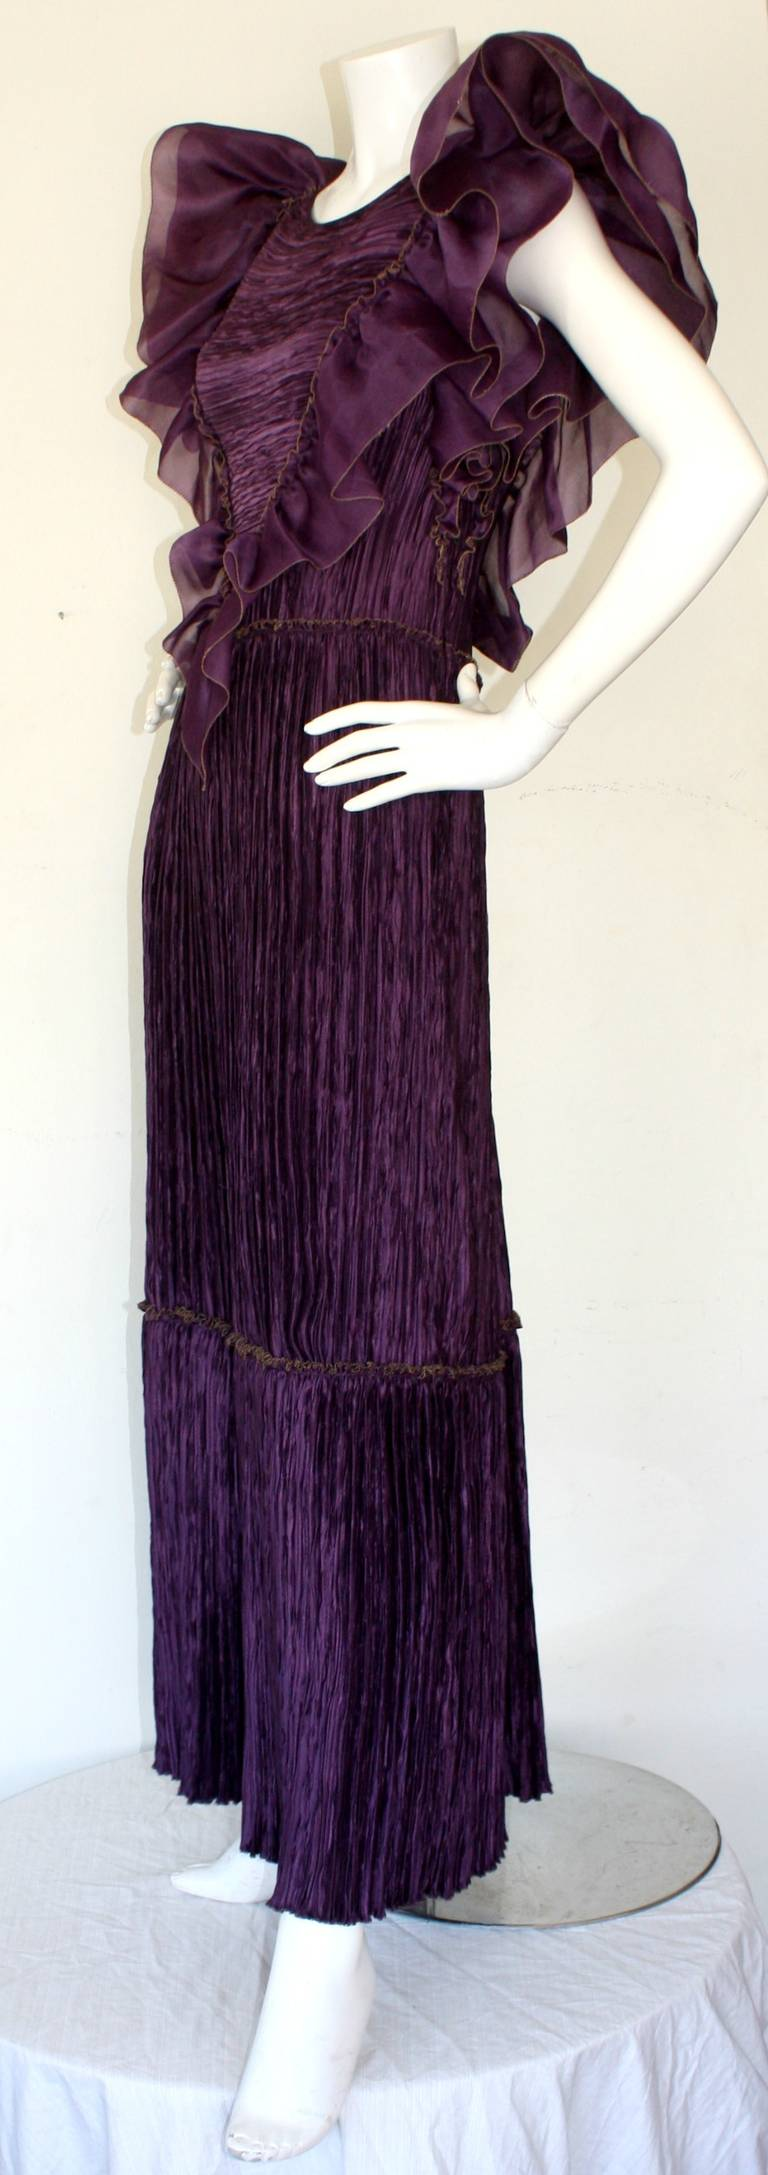 Mary McFadden Couture Vintage Regal Pleated Origami Purple Gown Avant Garde 2